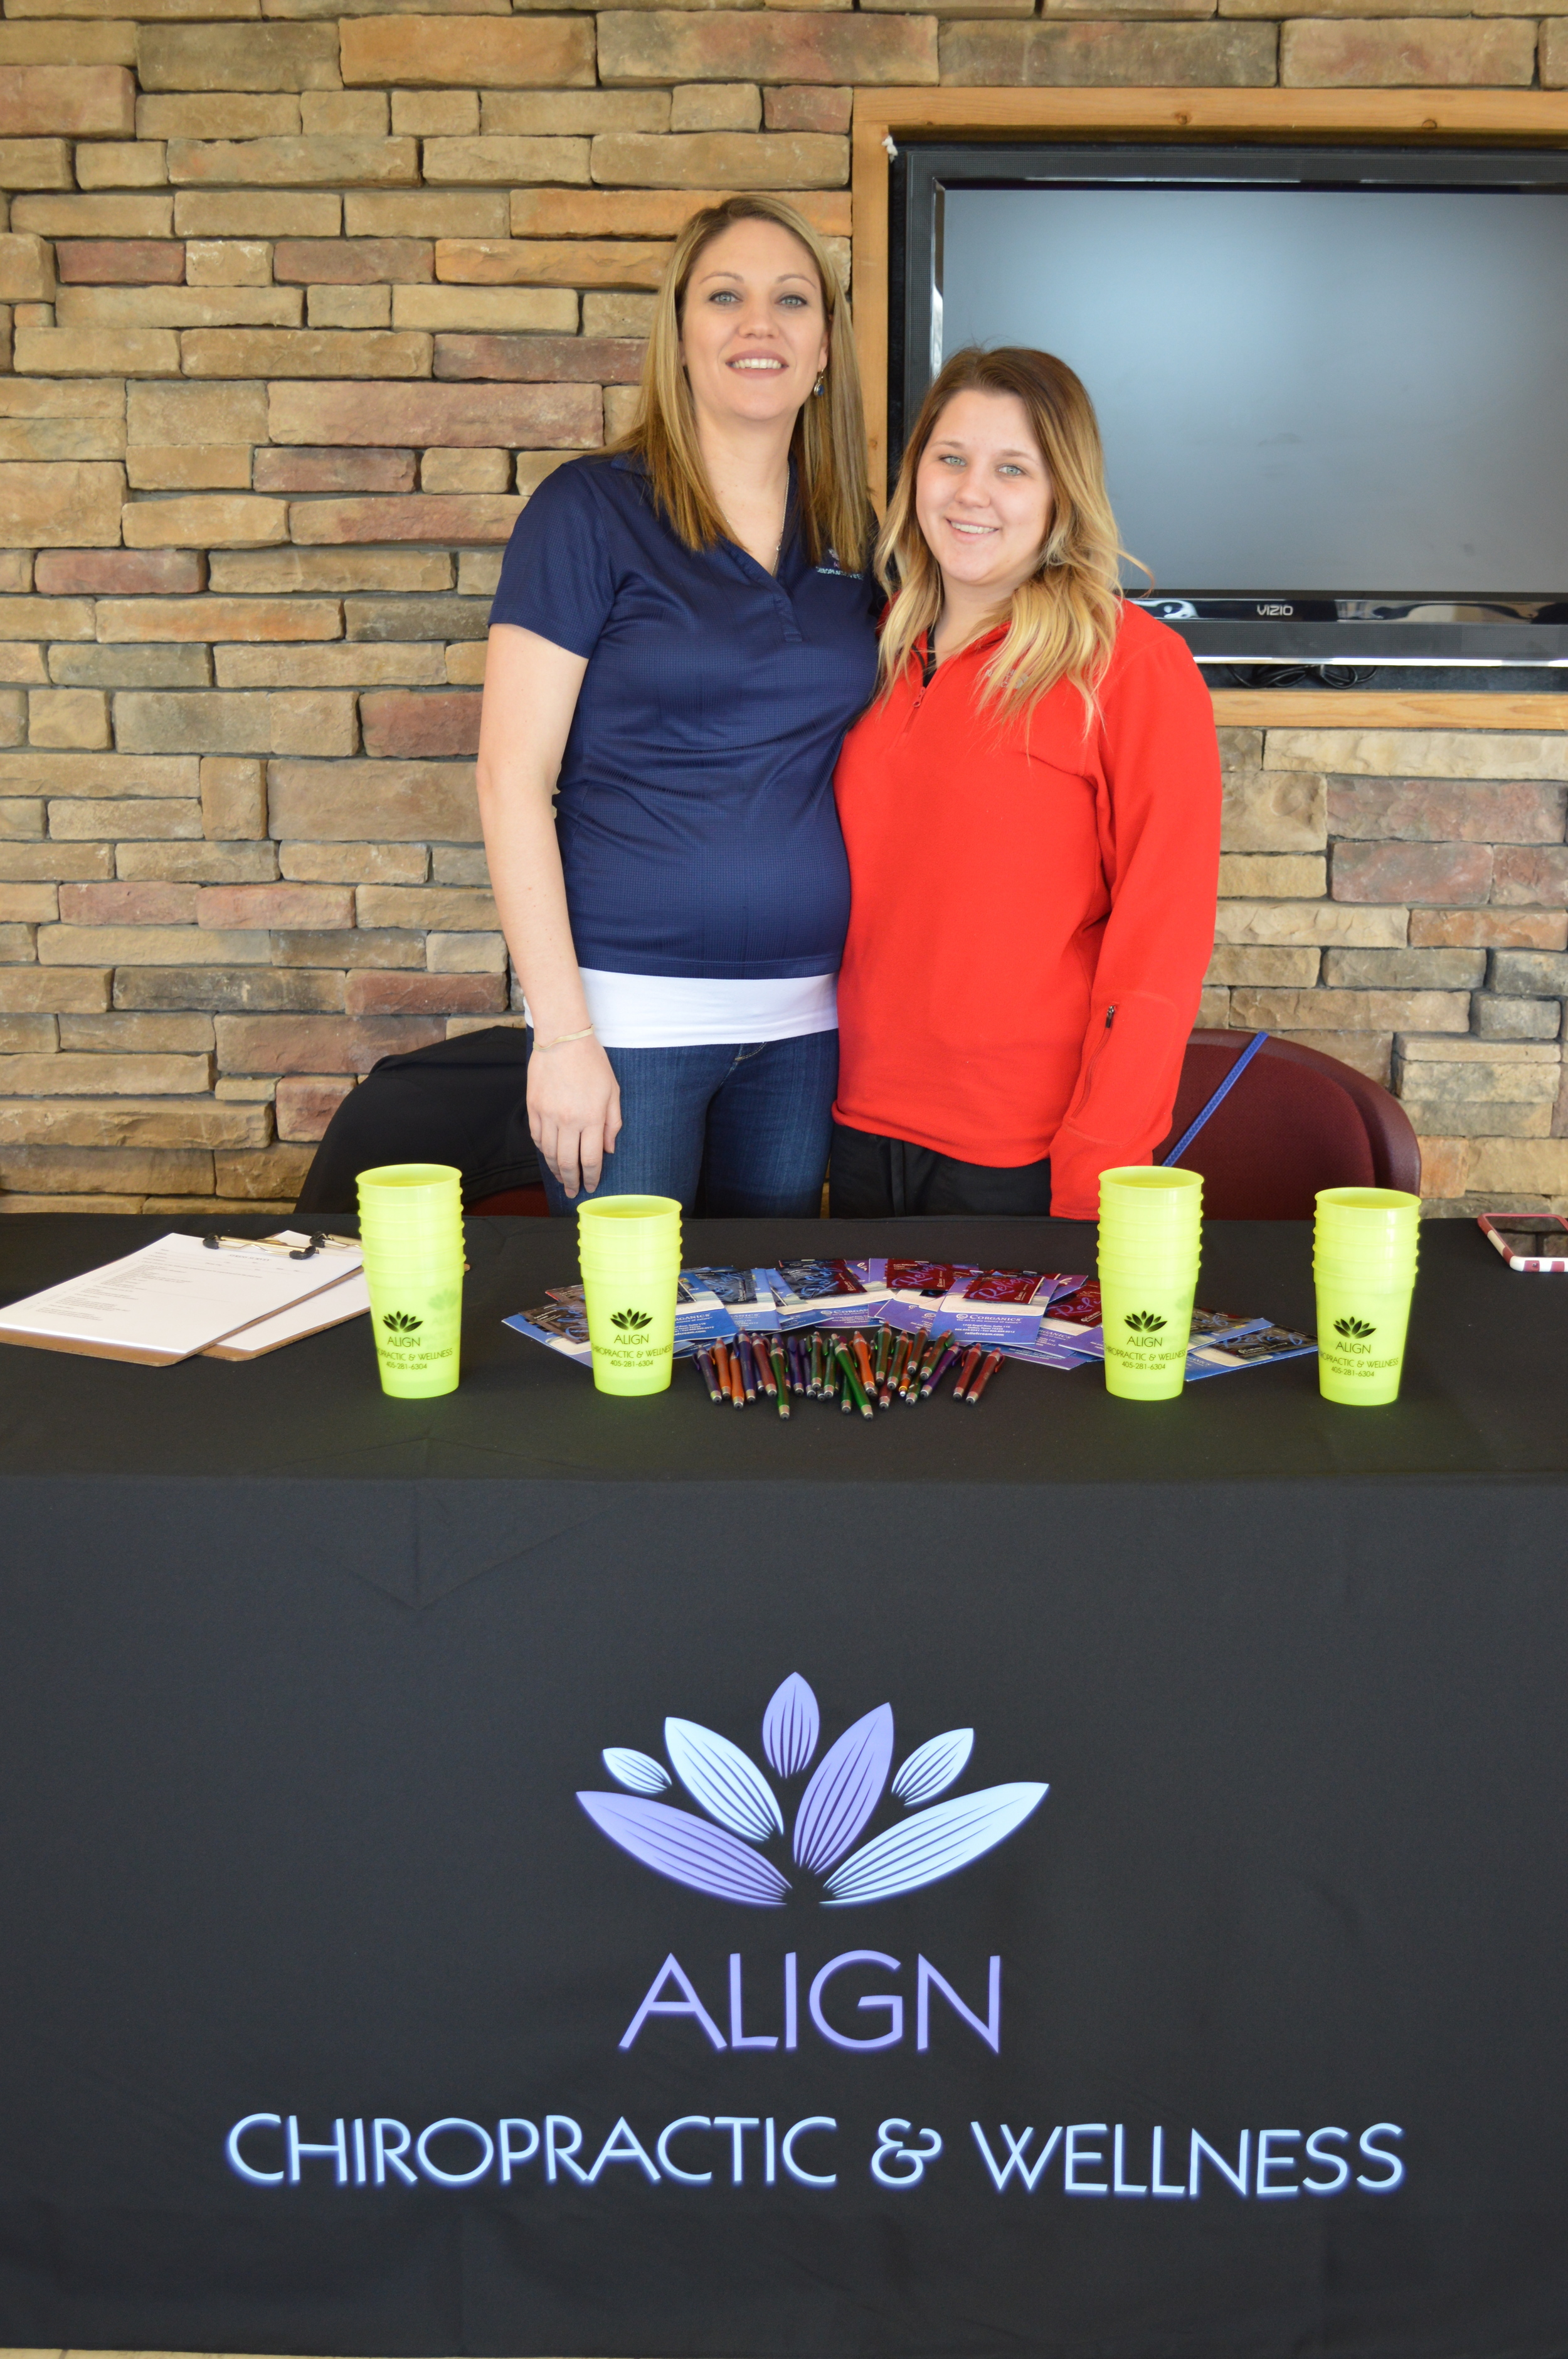 Dr. Tara Goodson (right) and Kendal Wyatt (left) talk to seniors about how chiropractic services can help ease the pains of aging. Align Chiropractic and Wellness was voted Best Chiropractic in Choctaw for the second year in a row.